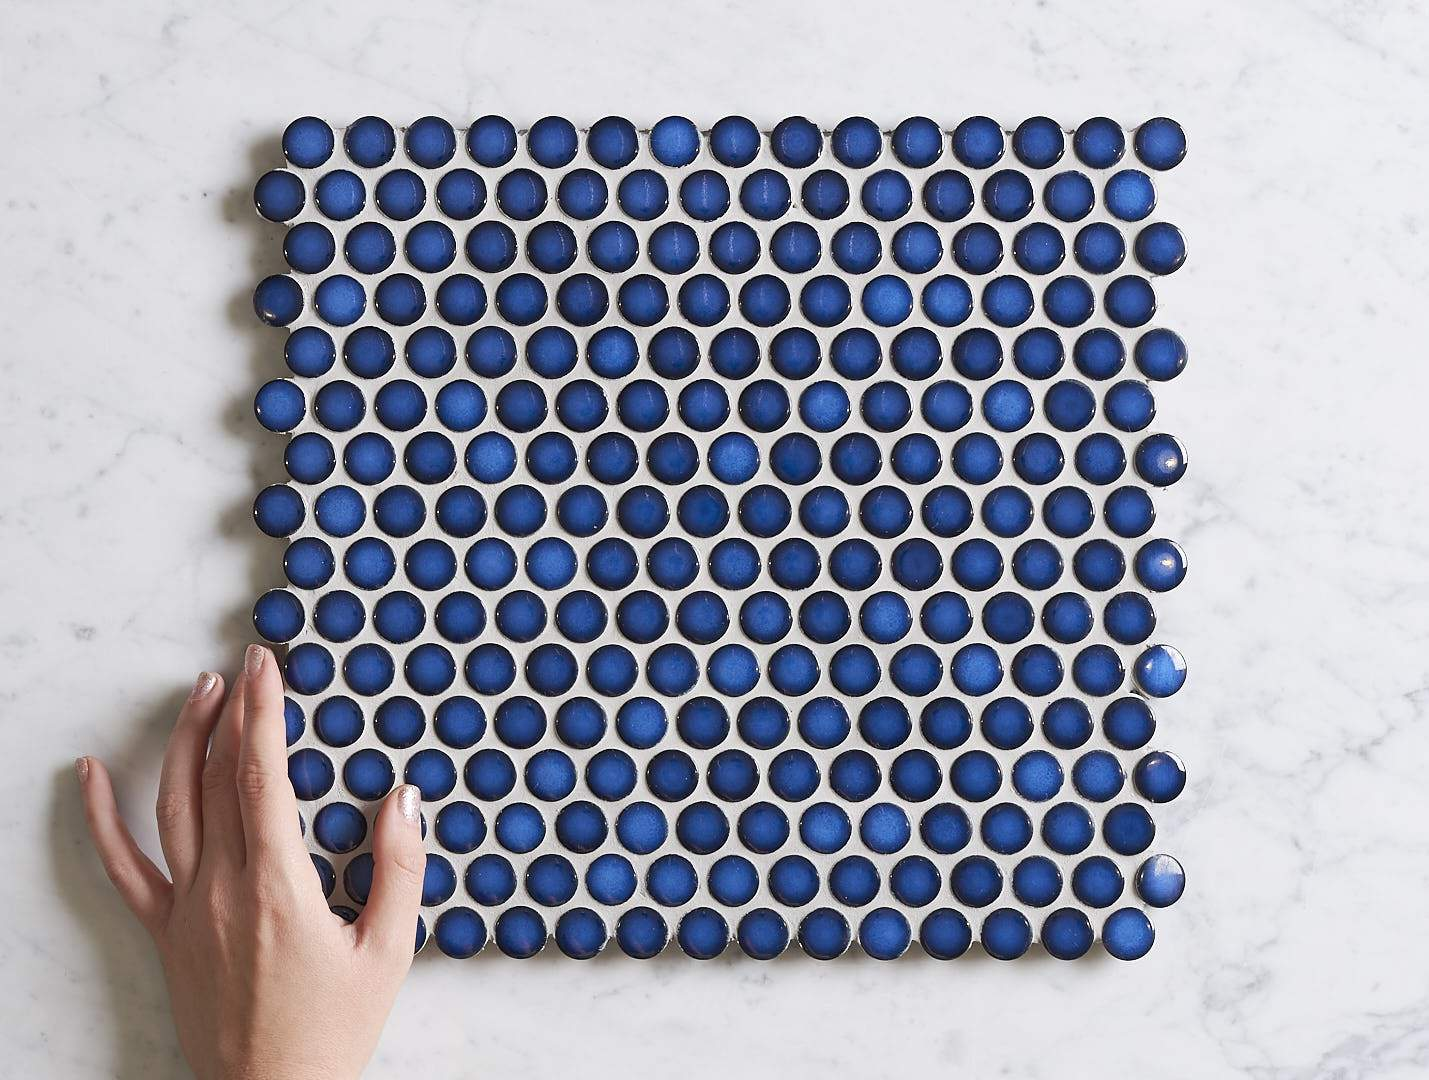 Broadwater Cobalt Blue Gloss Penny Round Mosaic Tile